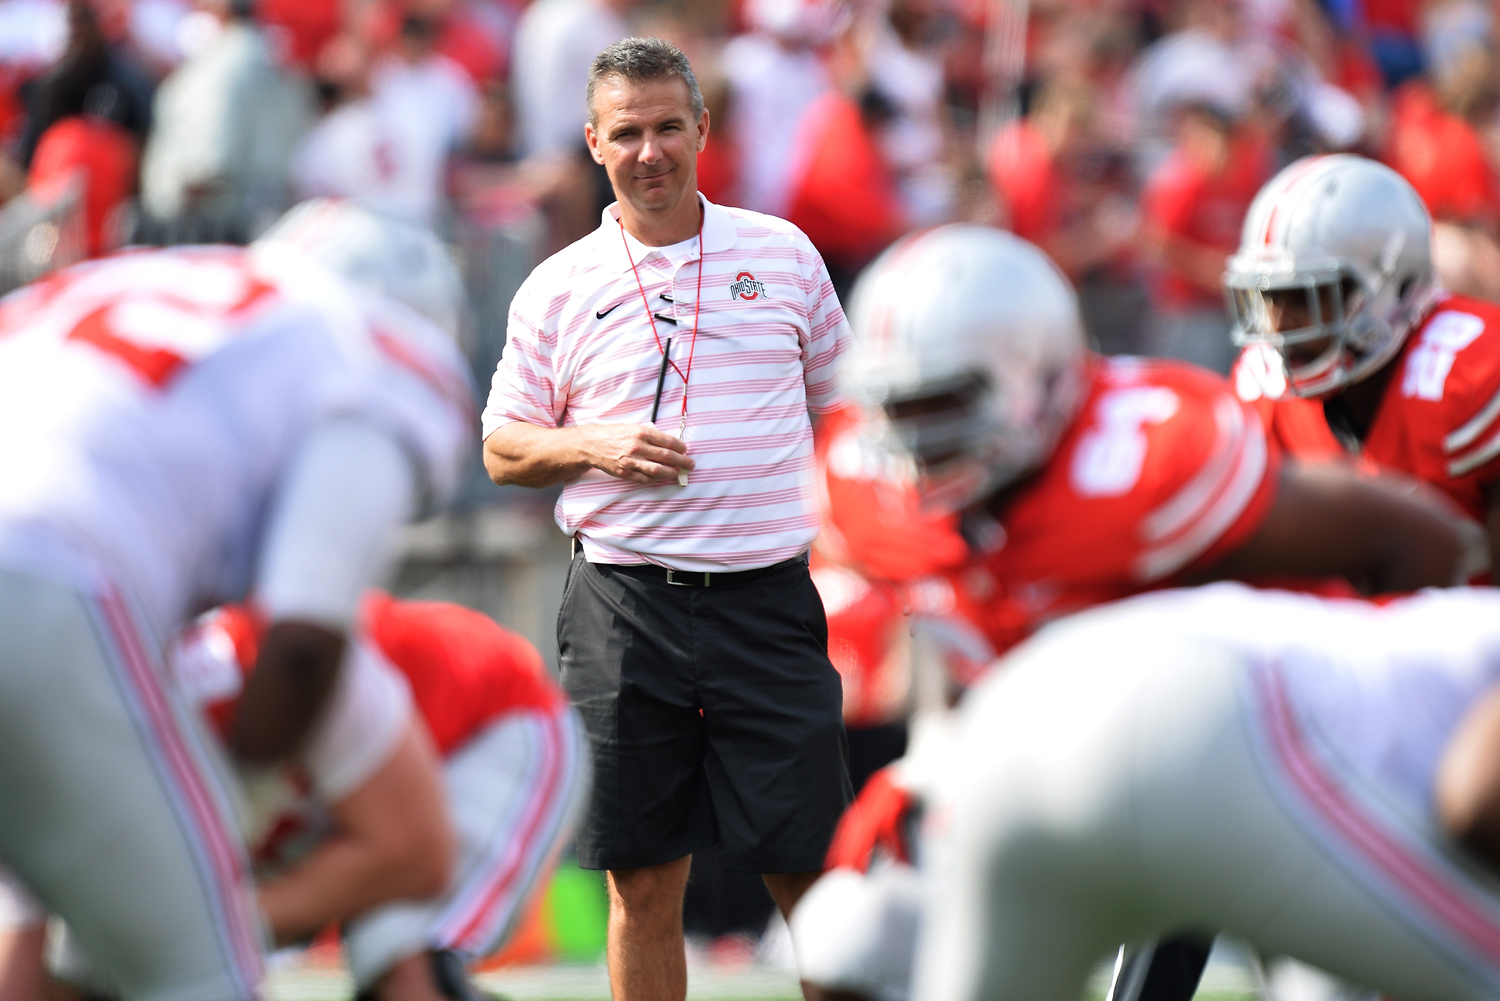 Head Coach Urban Meyer of the Ohio State Buckeyes watches his team scrimmage against each other during the annual Ohio State Spring Game at Ohio Stadium on April 18, 2015 in Columbus, Ohio.